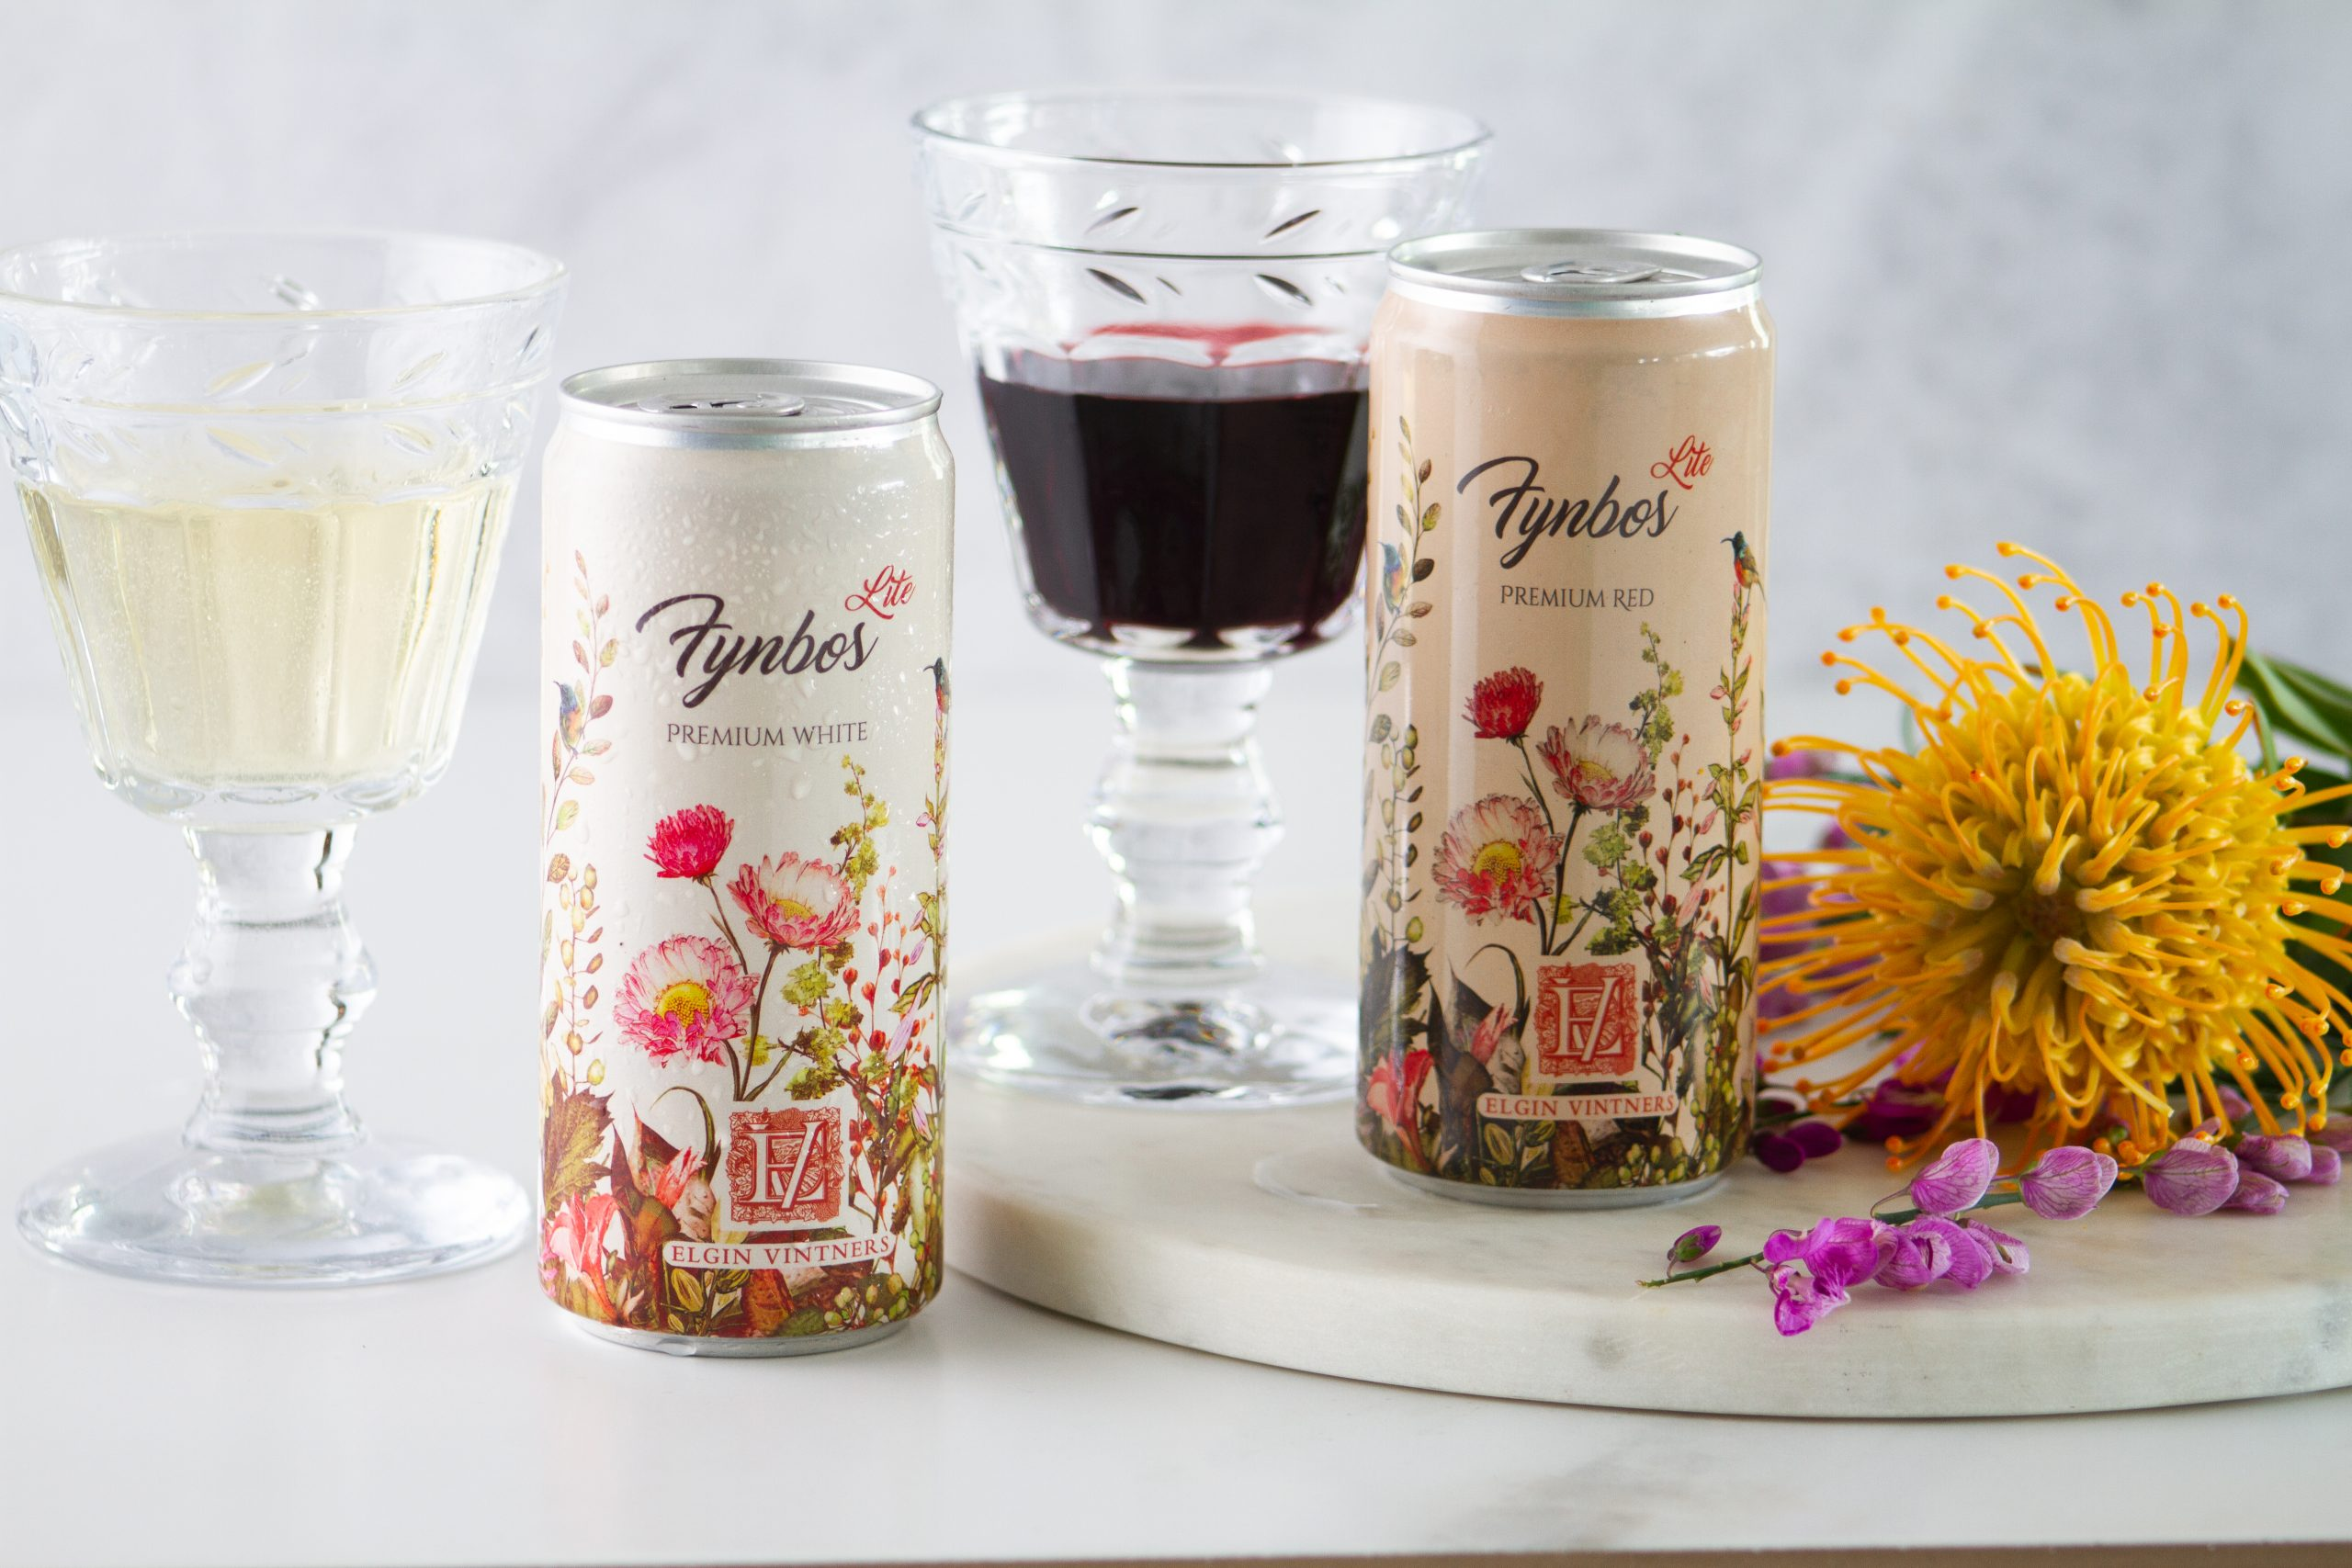 Elgin Vintners Brings Elegance to the Canned Wine Trend